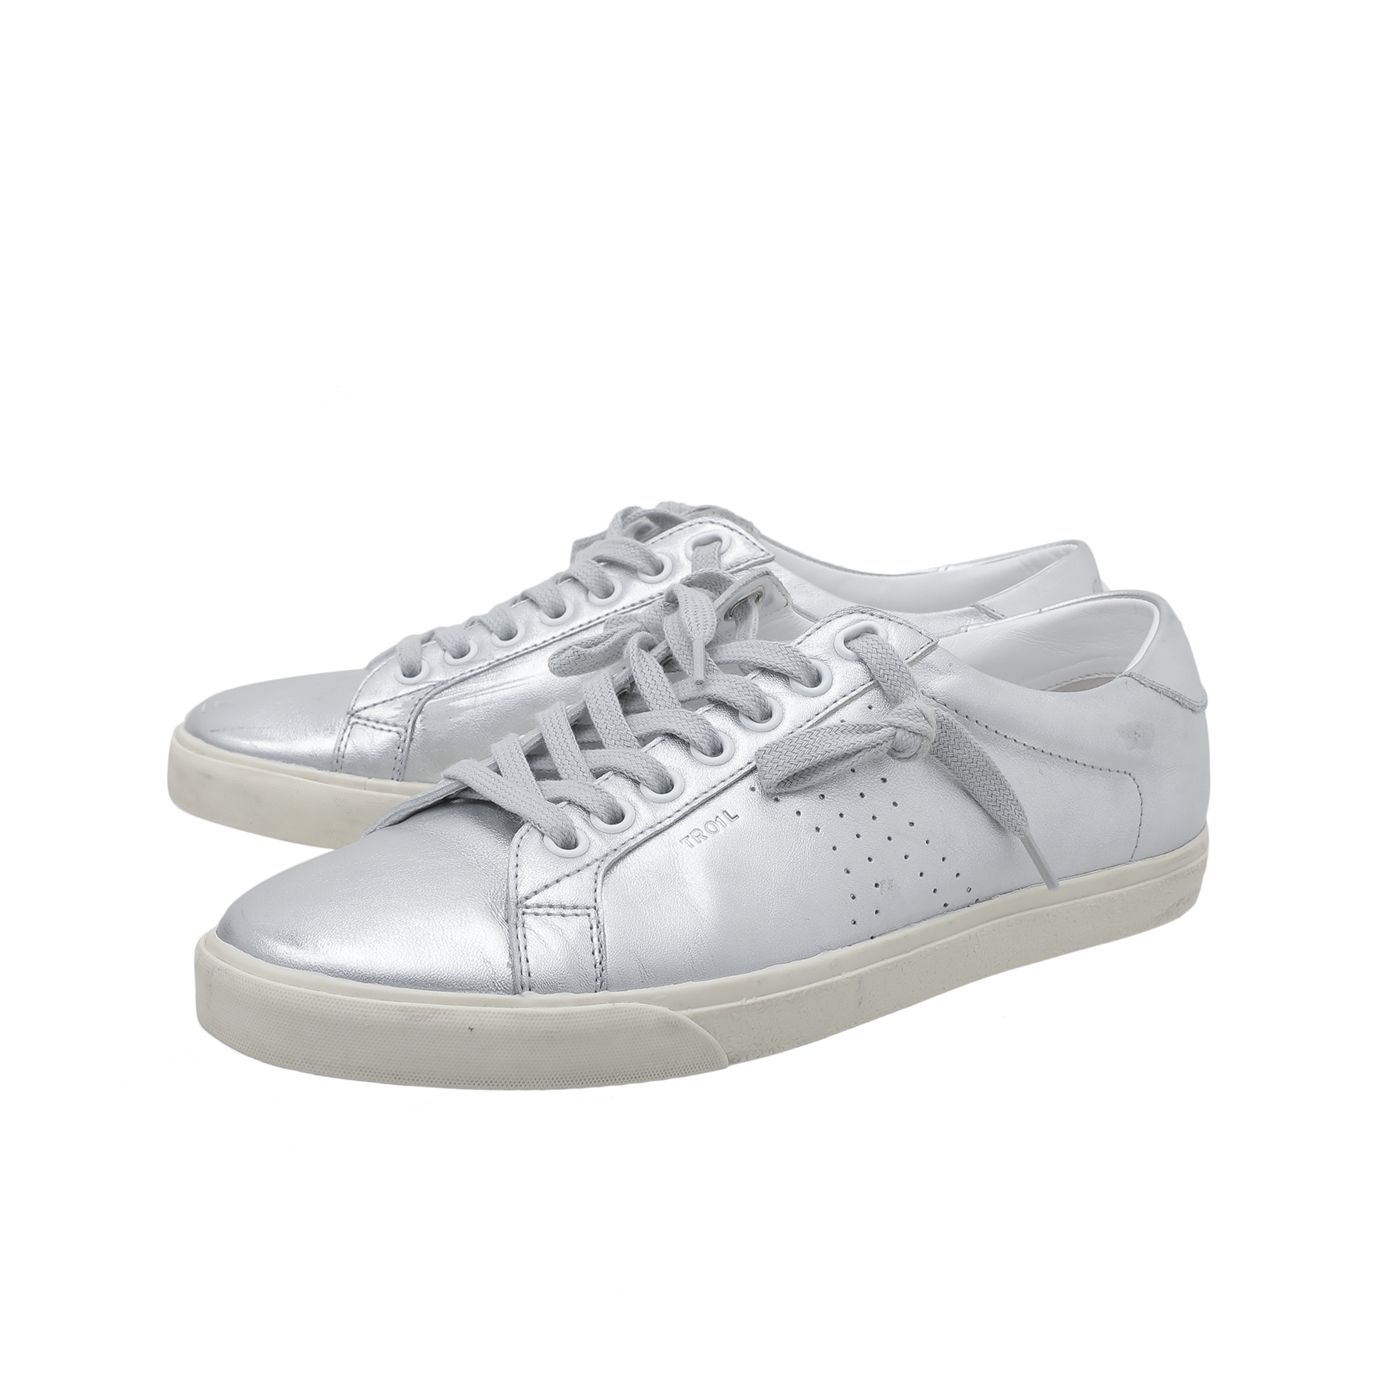 Celine Silver Triomphe Lace Up Sneakers 38